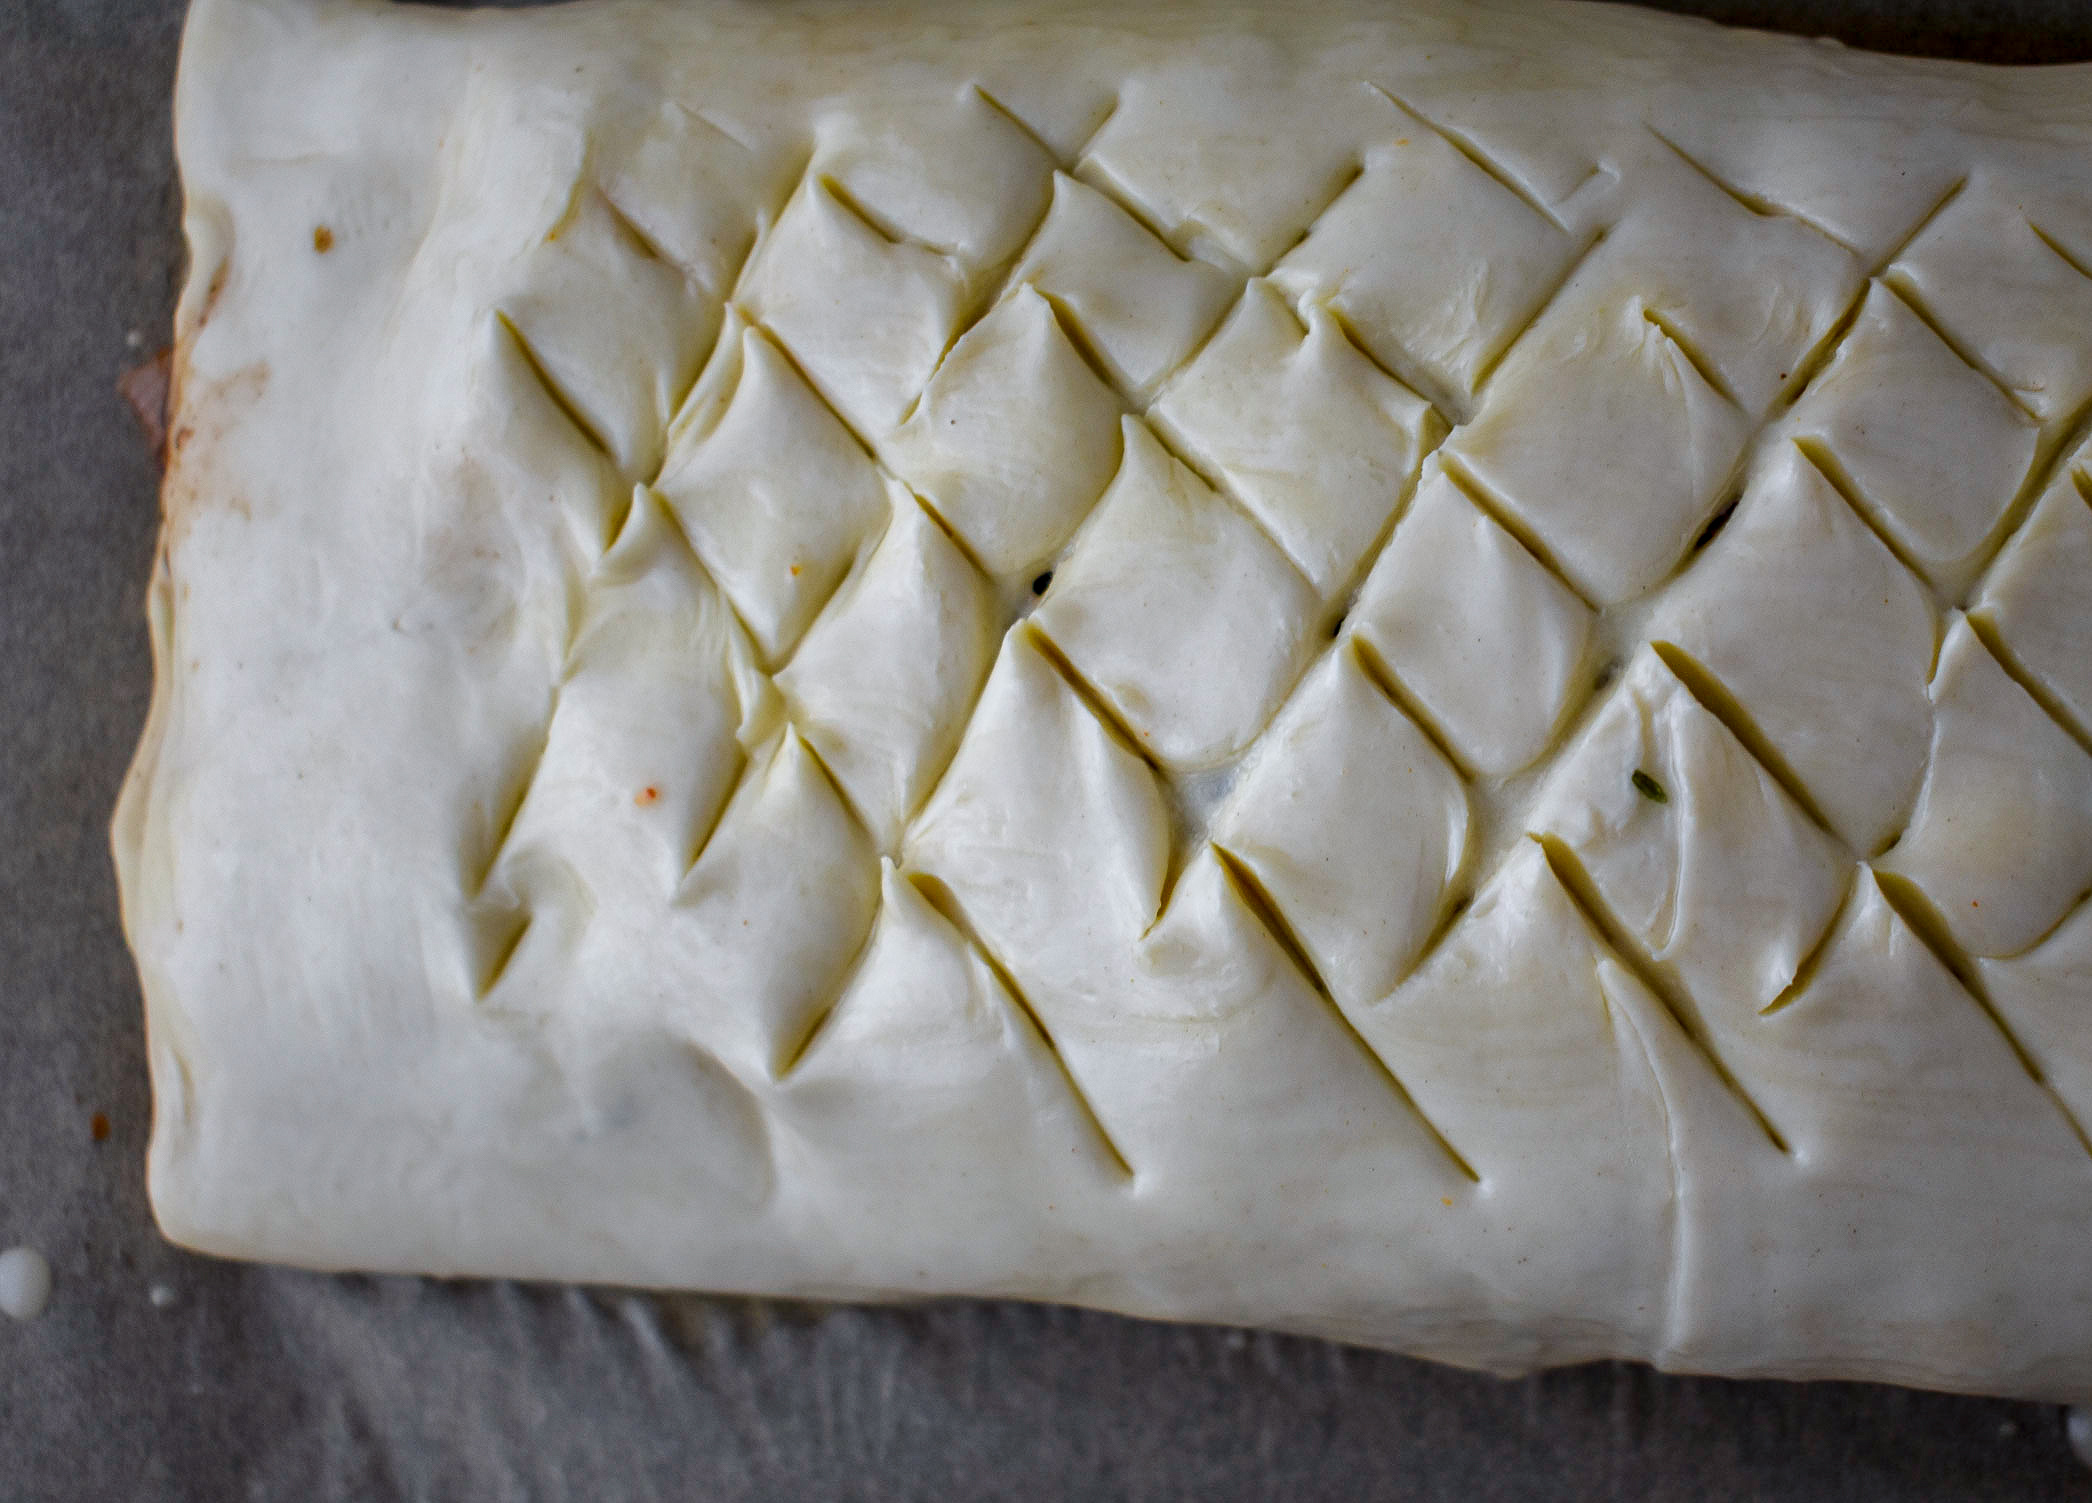 7. After the egg wash, make a lattice design cut ... diagonal cuts in each direction across the top. You can do other designs as well ... be creative!